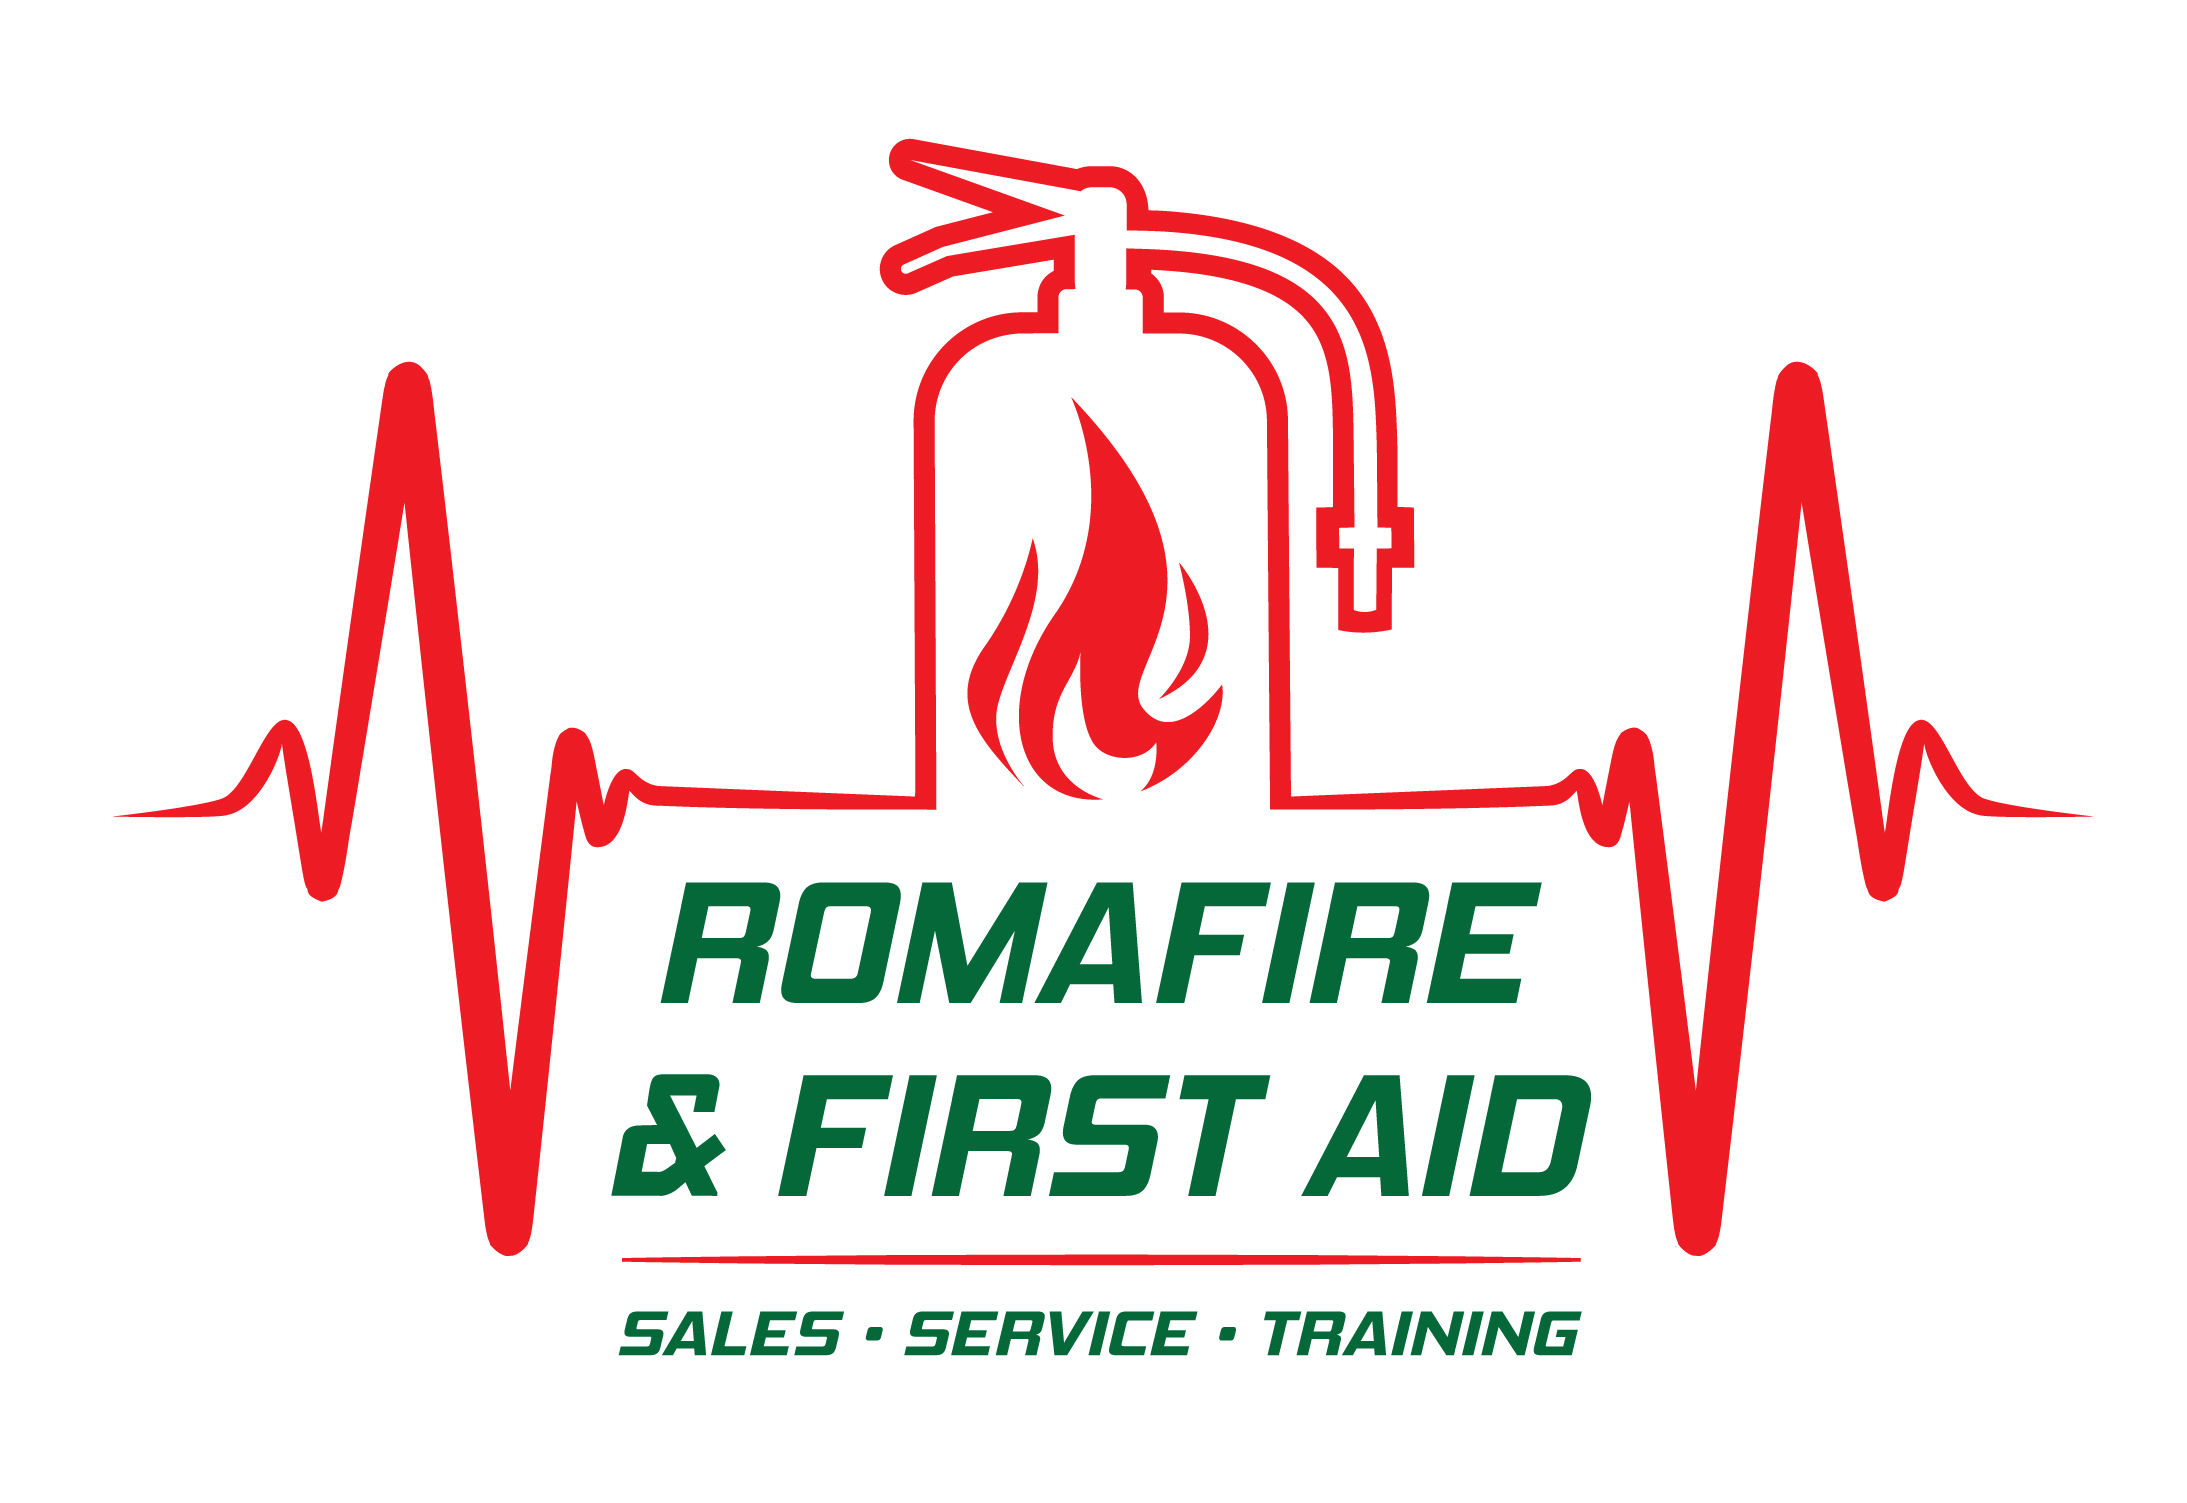 Romafire & FirstAid